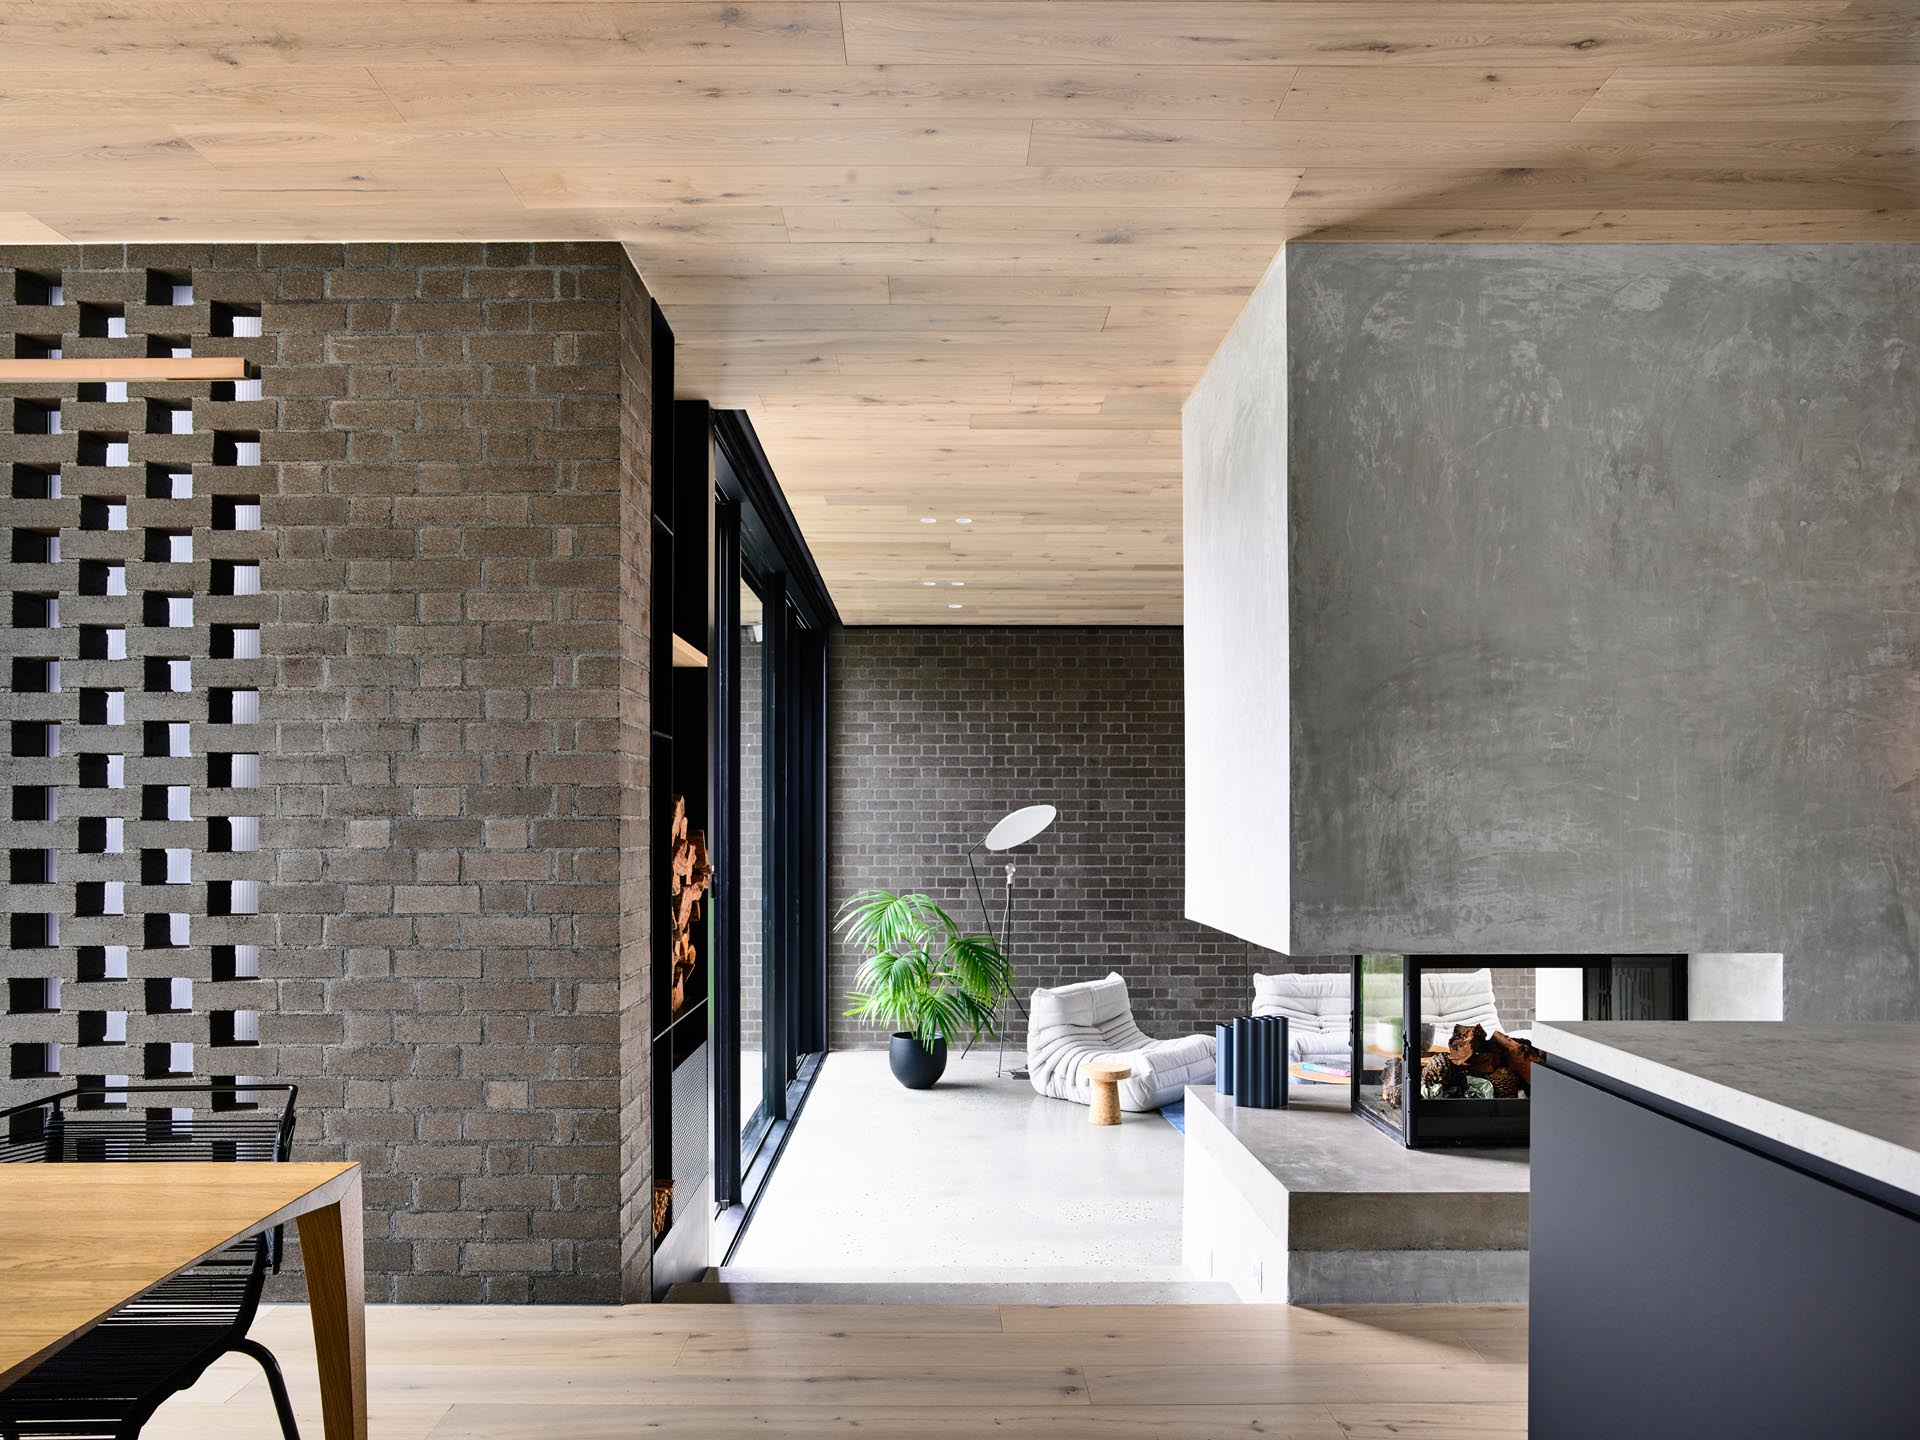 This modern interior showcases dark brick walls, as well as a wood ceiling, and a see-through fireplace that can be enjoyed from both the kitchen and the living room.